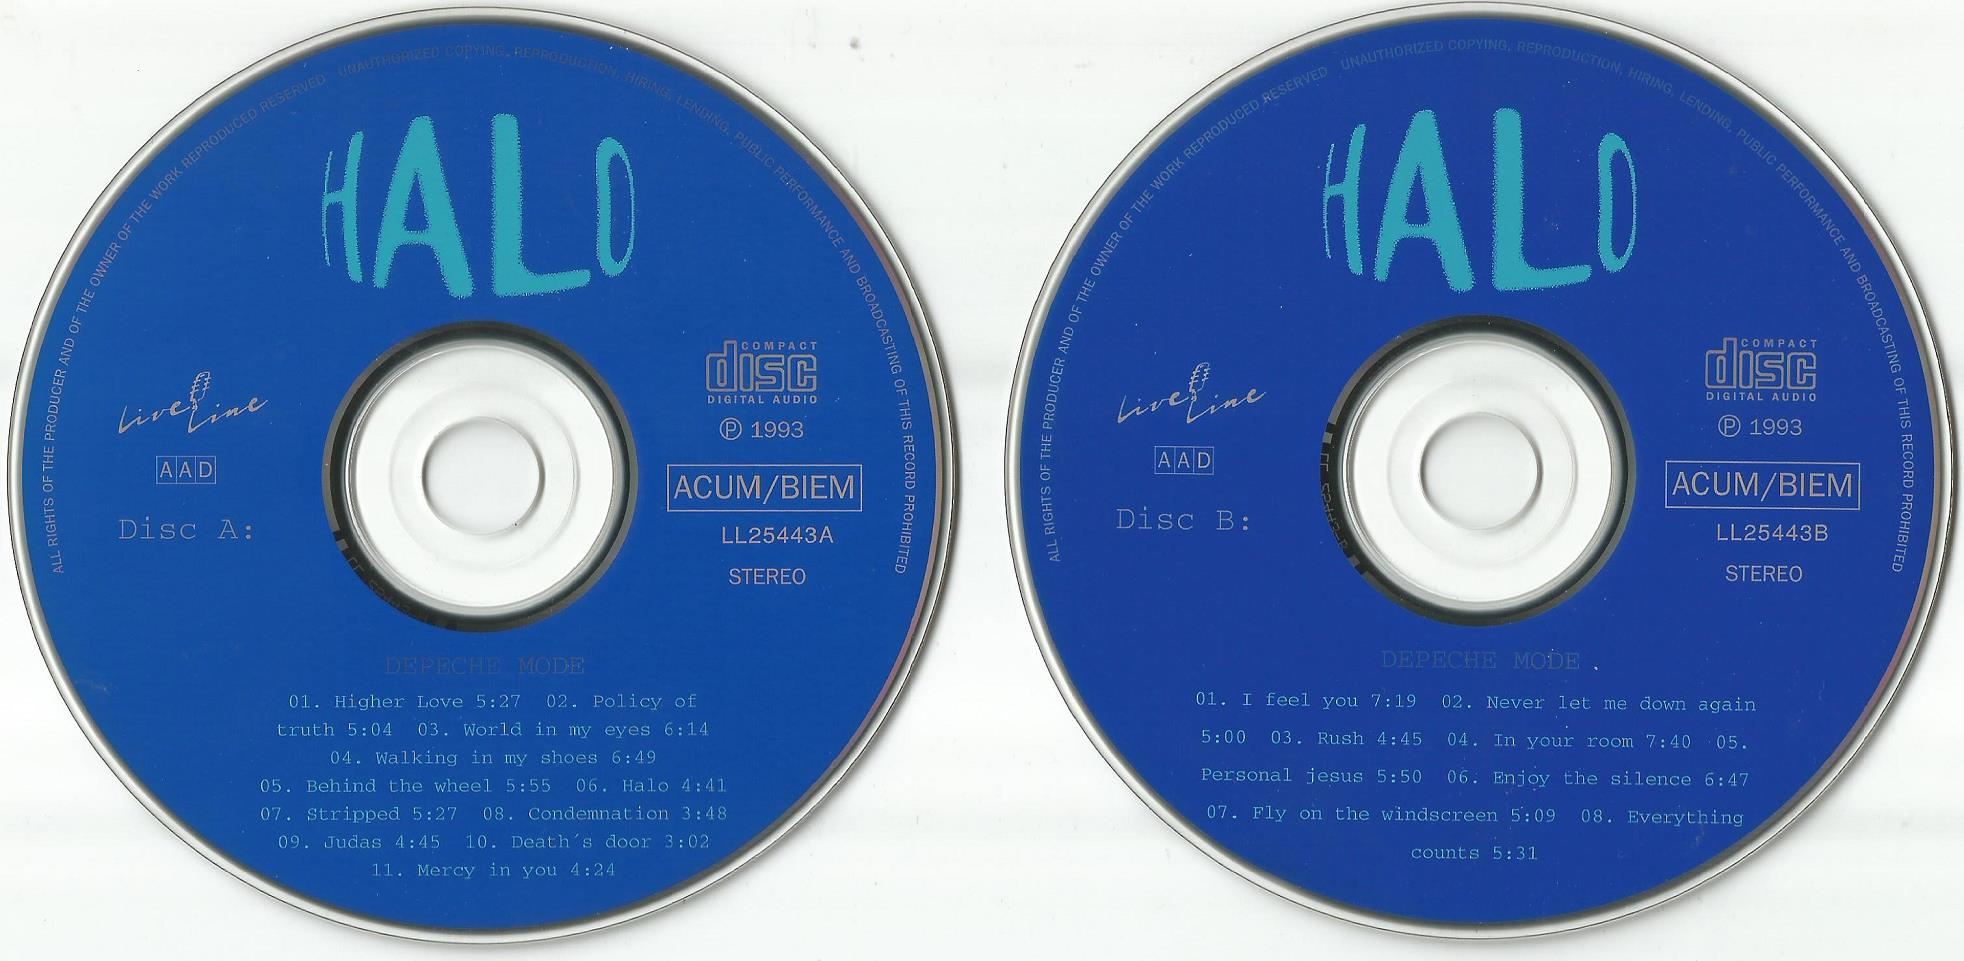 DEPECHE MODE – HALO (LIVE IN LAUSANNE, 1993) – ACE BOOTLEGS